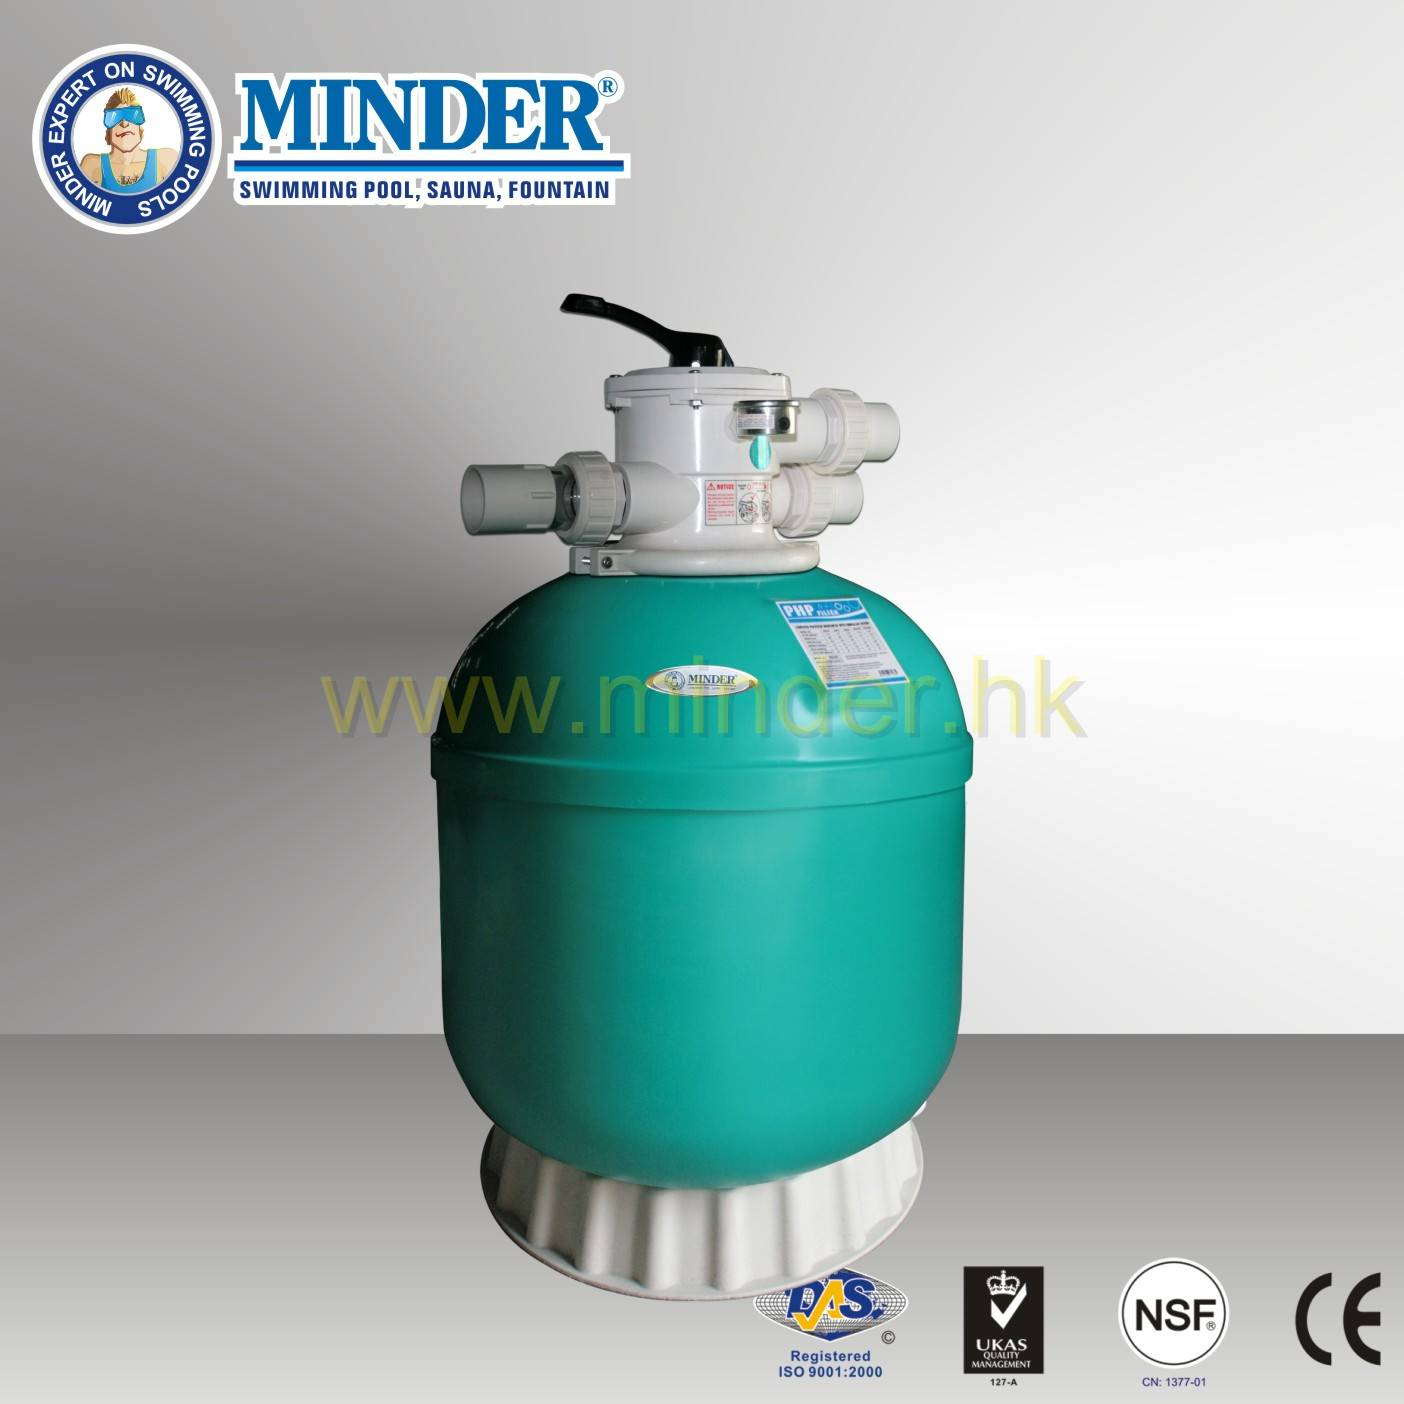 Firberglass 1.5 inch Valve Swimming Pool Sand Filter